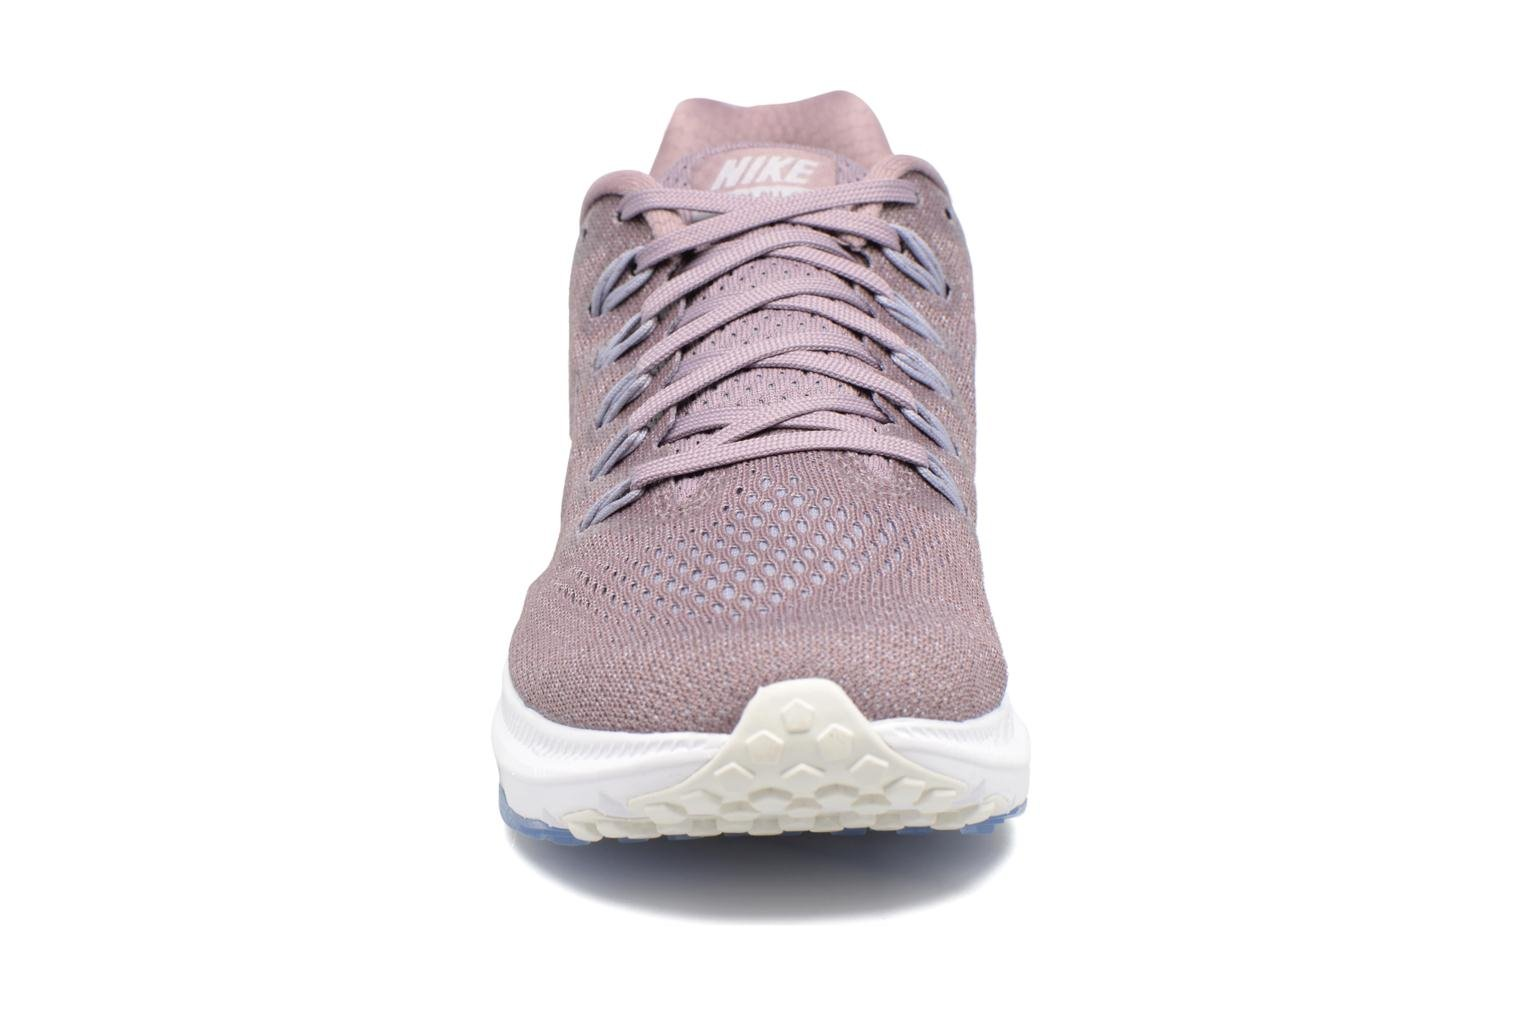 Wmns Nike Zoom All Out Low Taupe Grey/Provence Purple-Pure Platinum